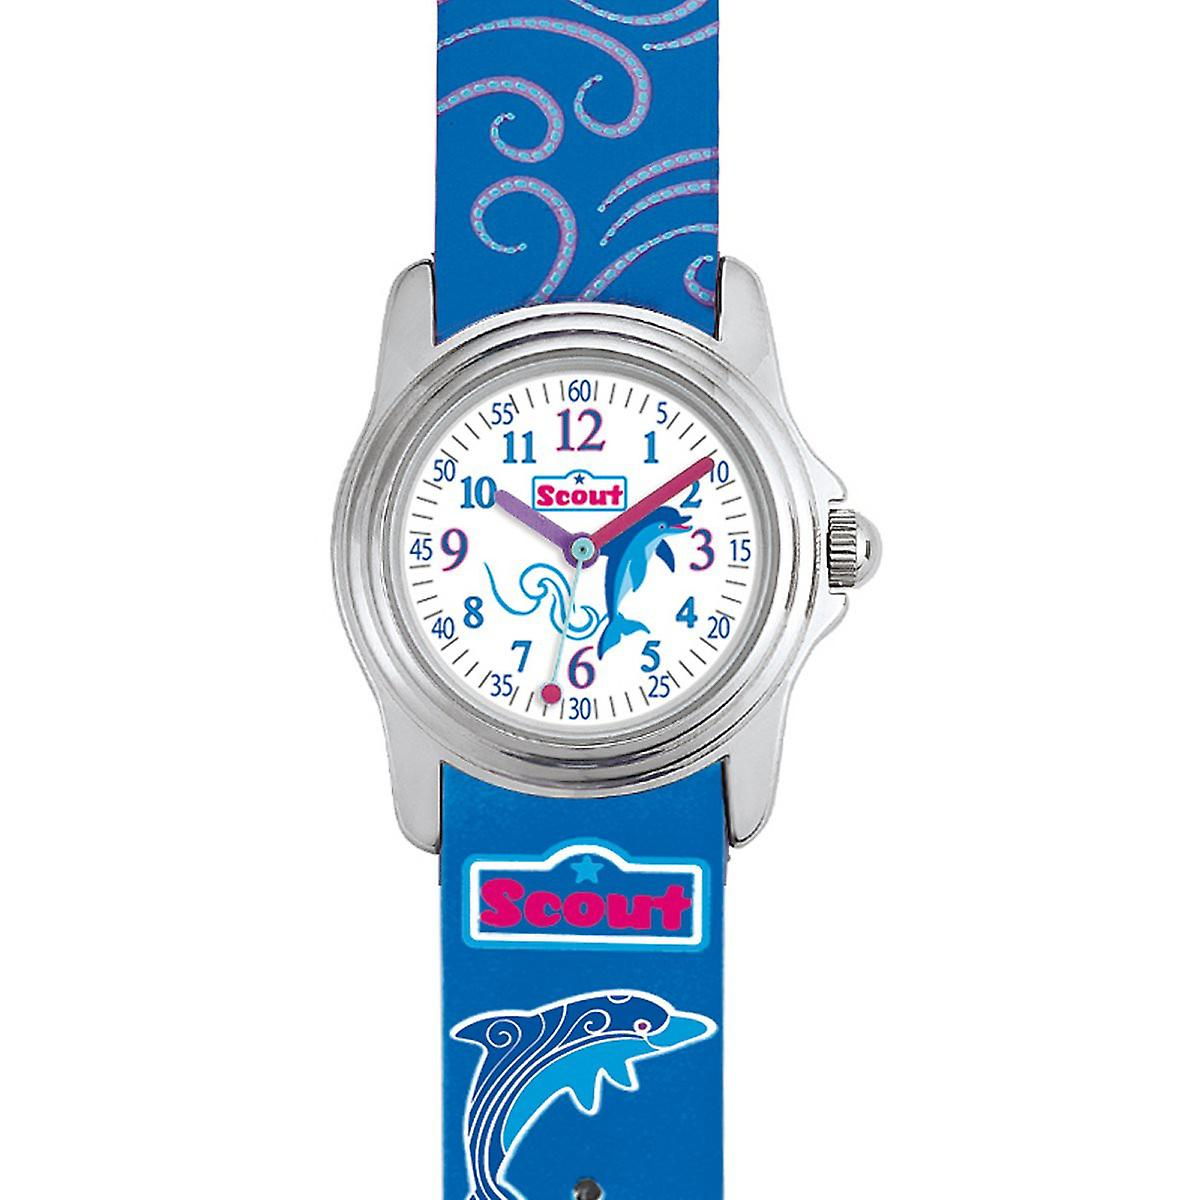 Scout child watch learning sweeties Dolphin girl Watch Blue 280301013